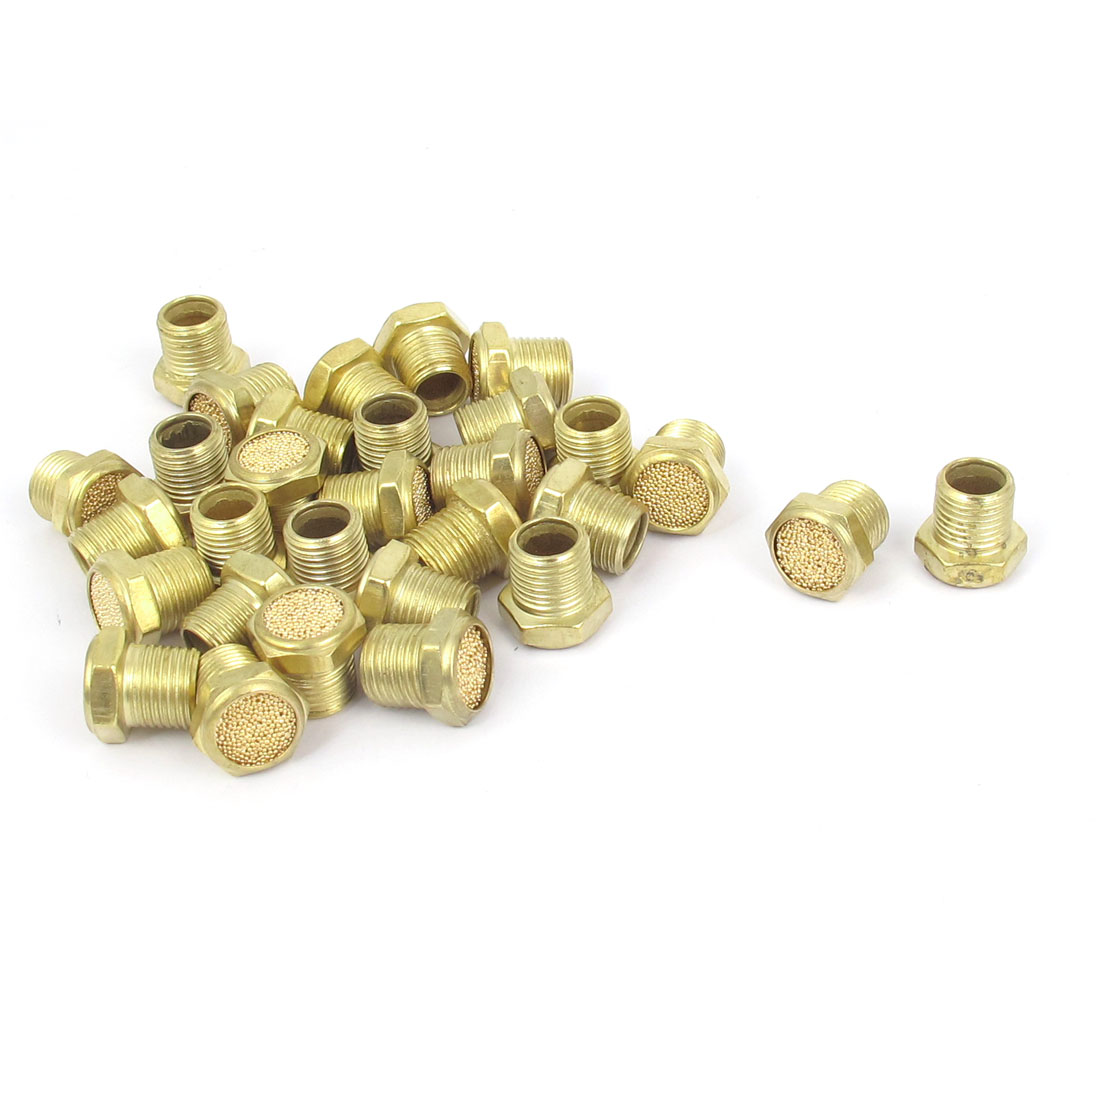 1/8BSP Thread Flat Head Brass Pneumatic Air Breather Muffler Noise Exhaust 30pcs